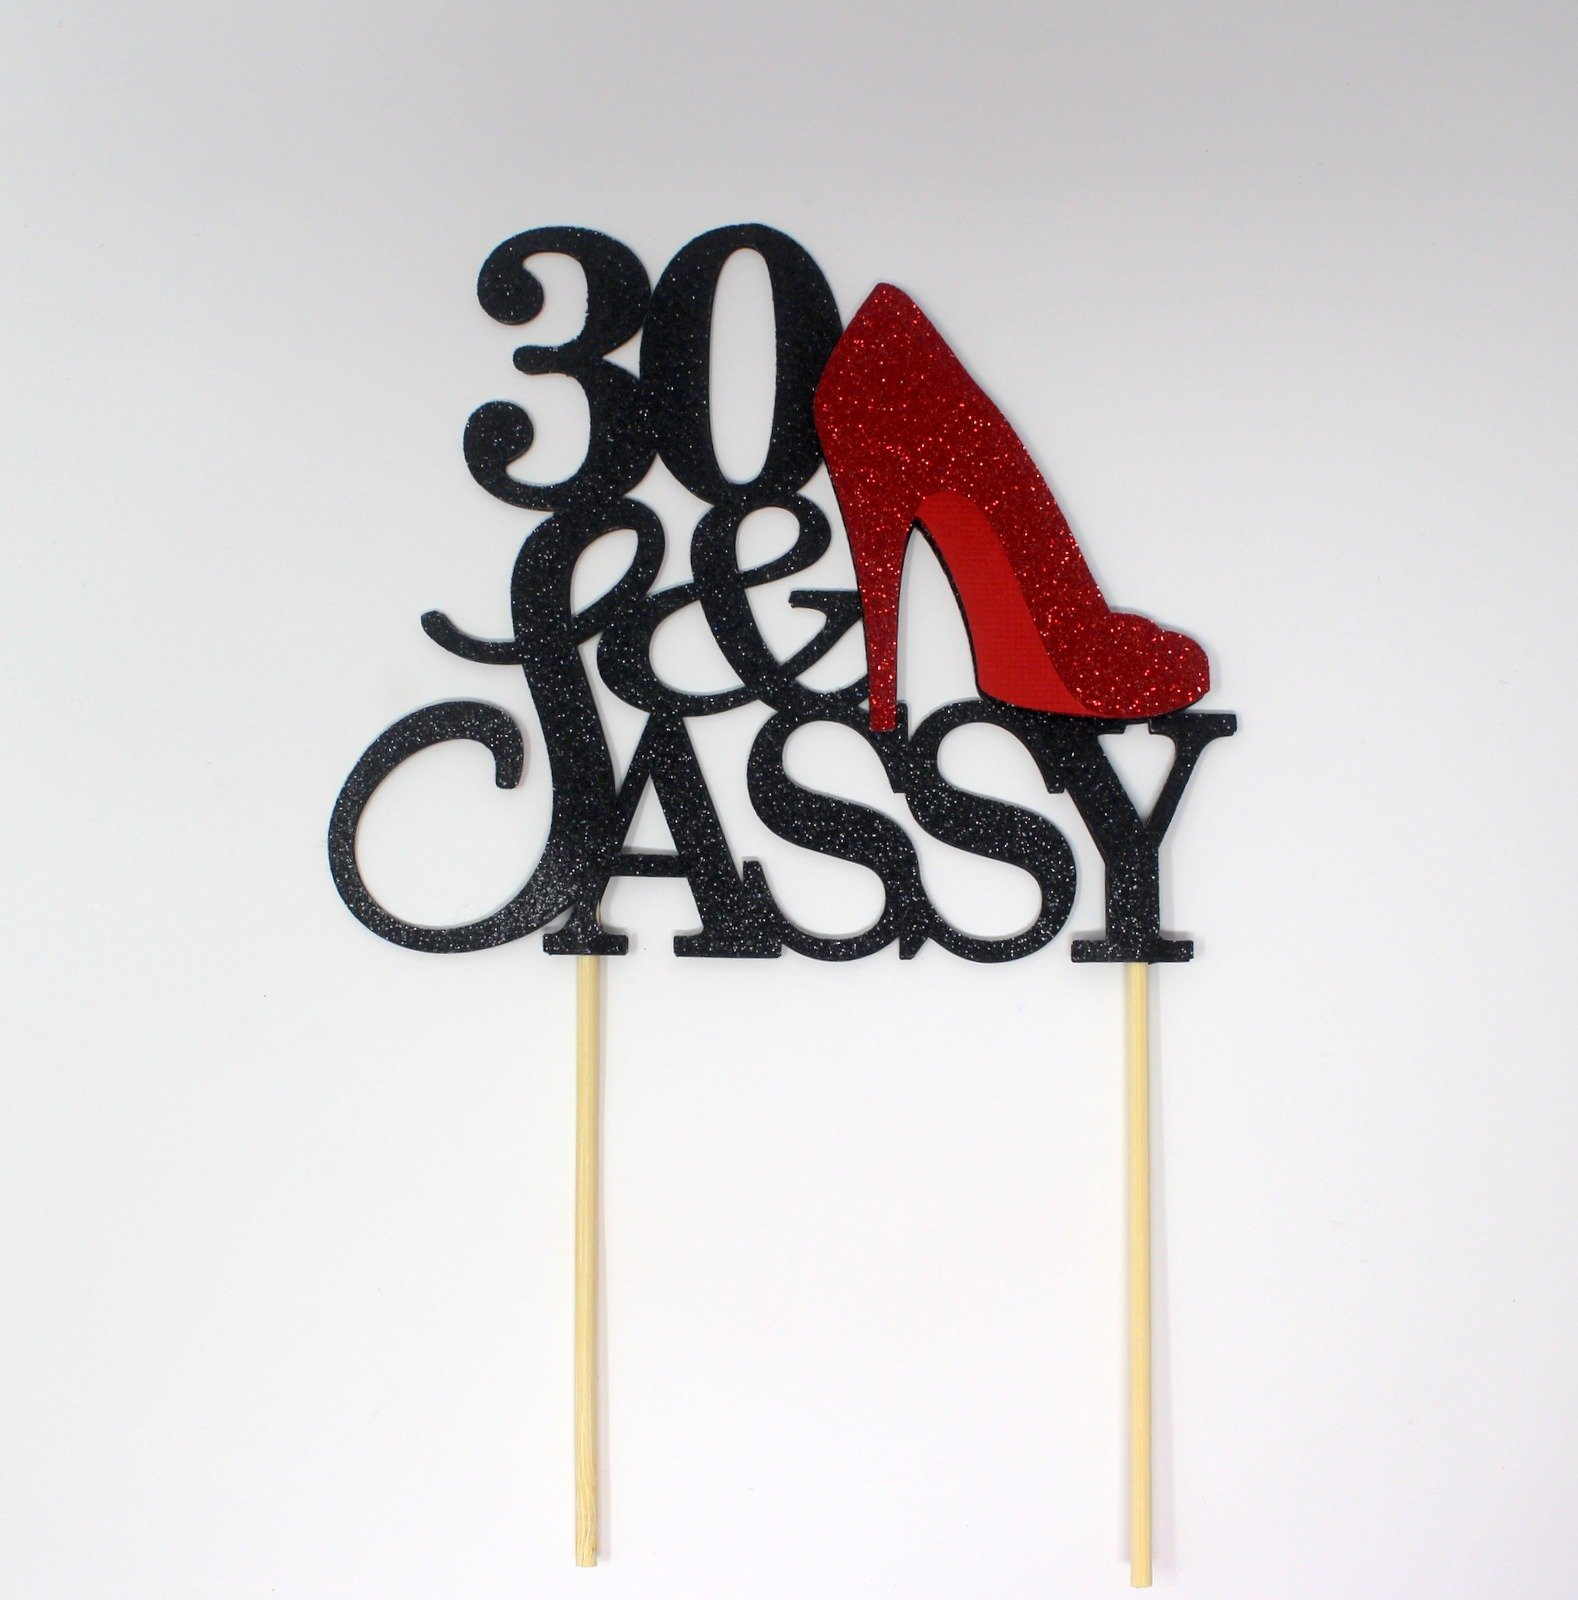 All About Details CAT30SABRE 30 and Sassy Cake Topper (Black and Red), 6in Wide and 5in Tall with 2-pcs of 4in Wood skewers.